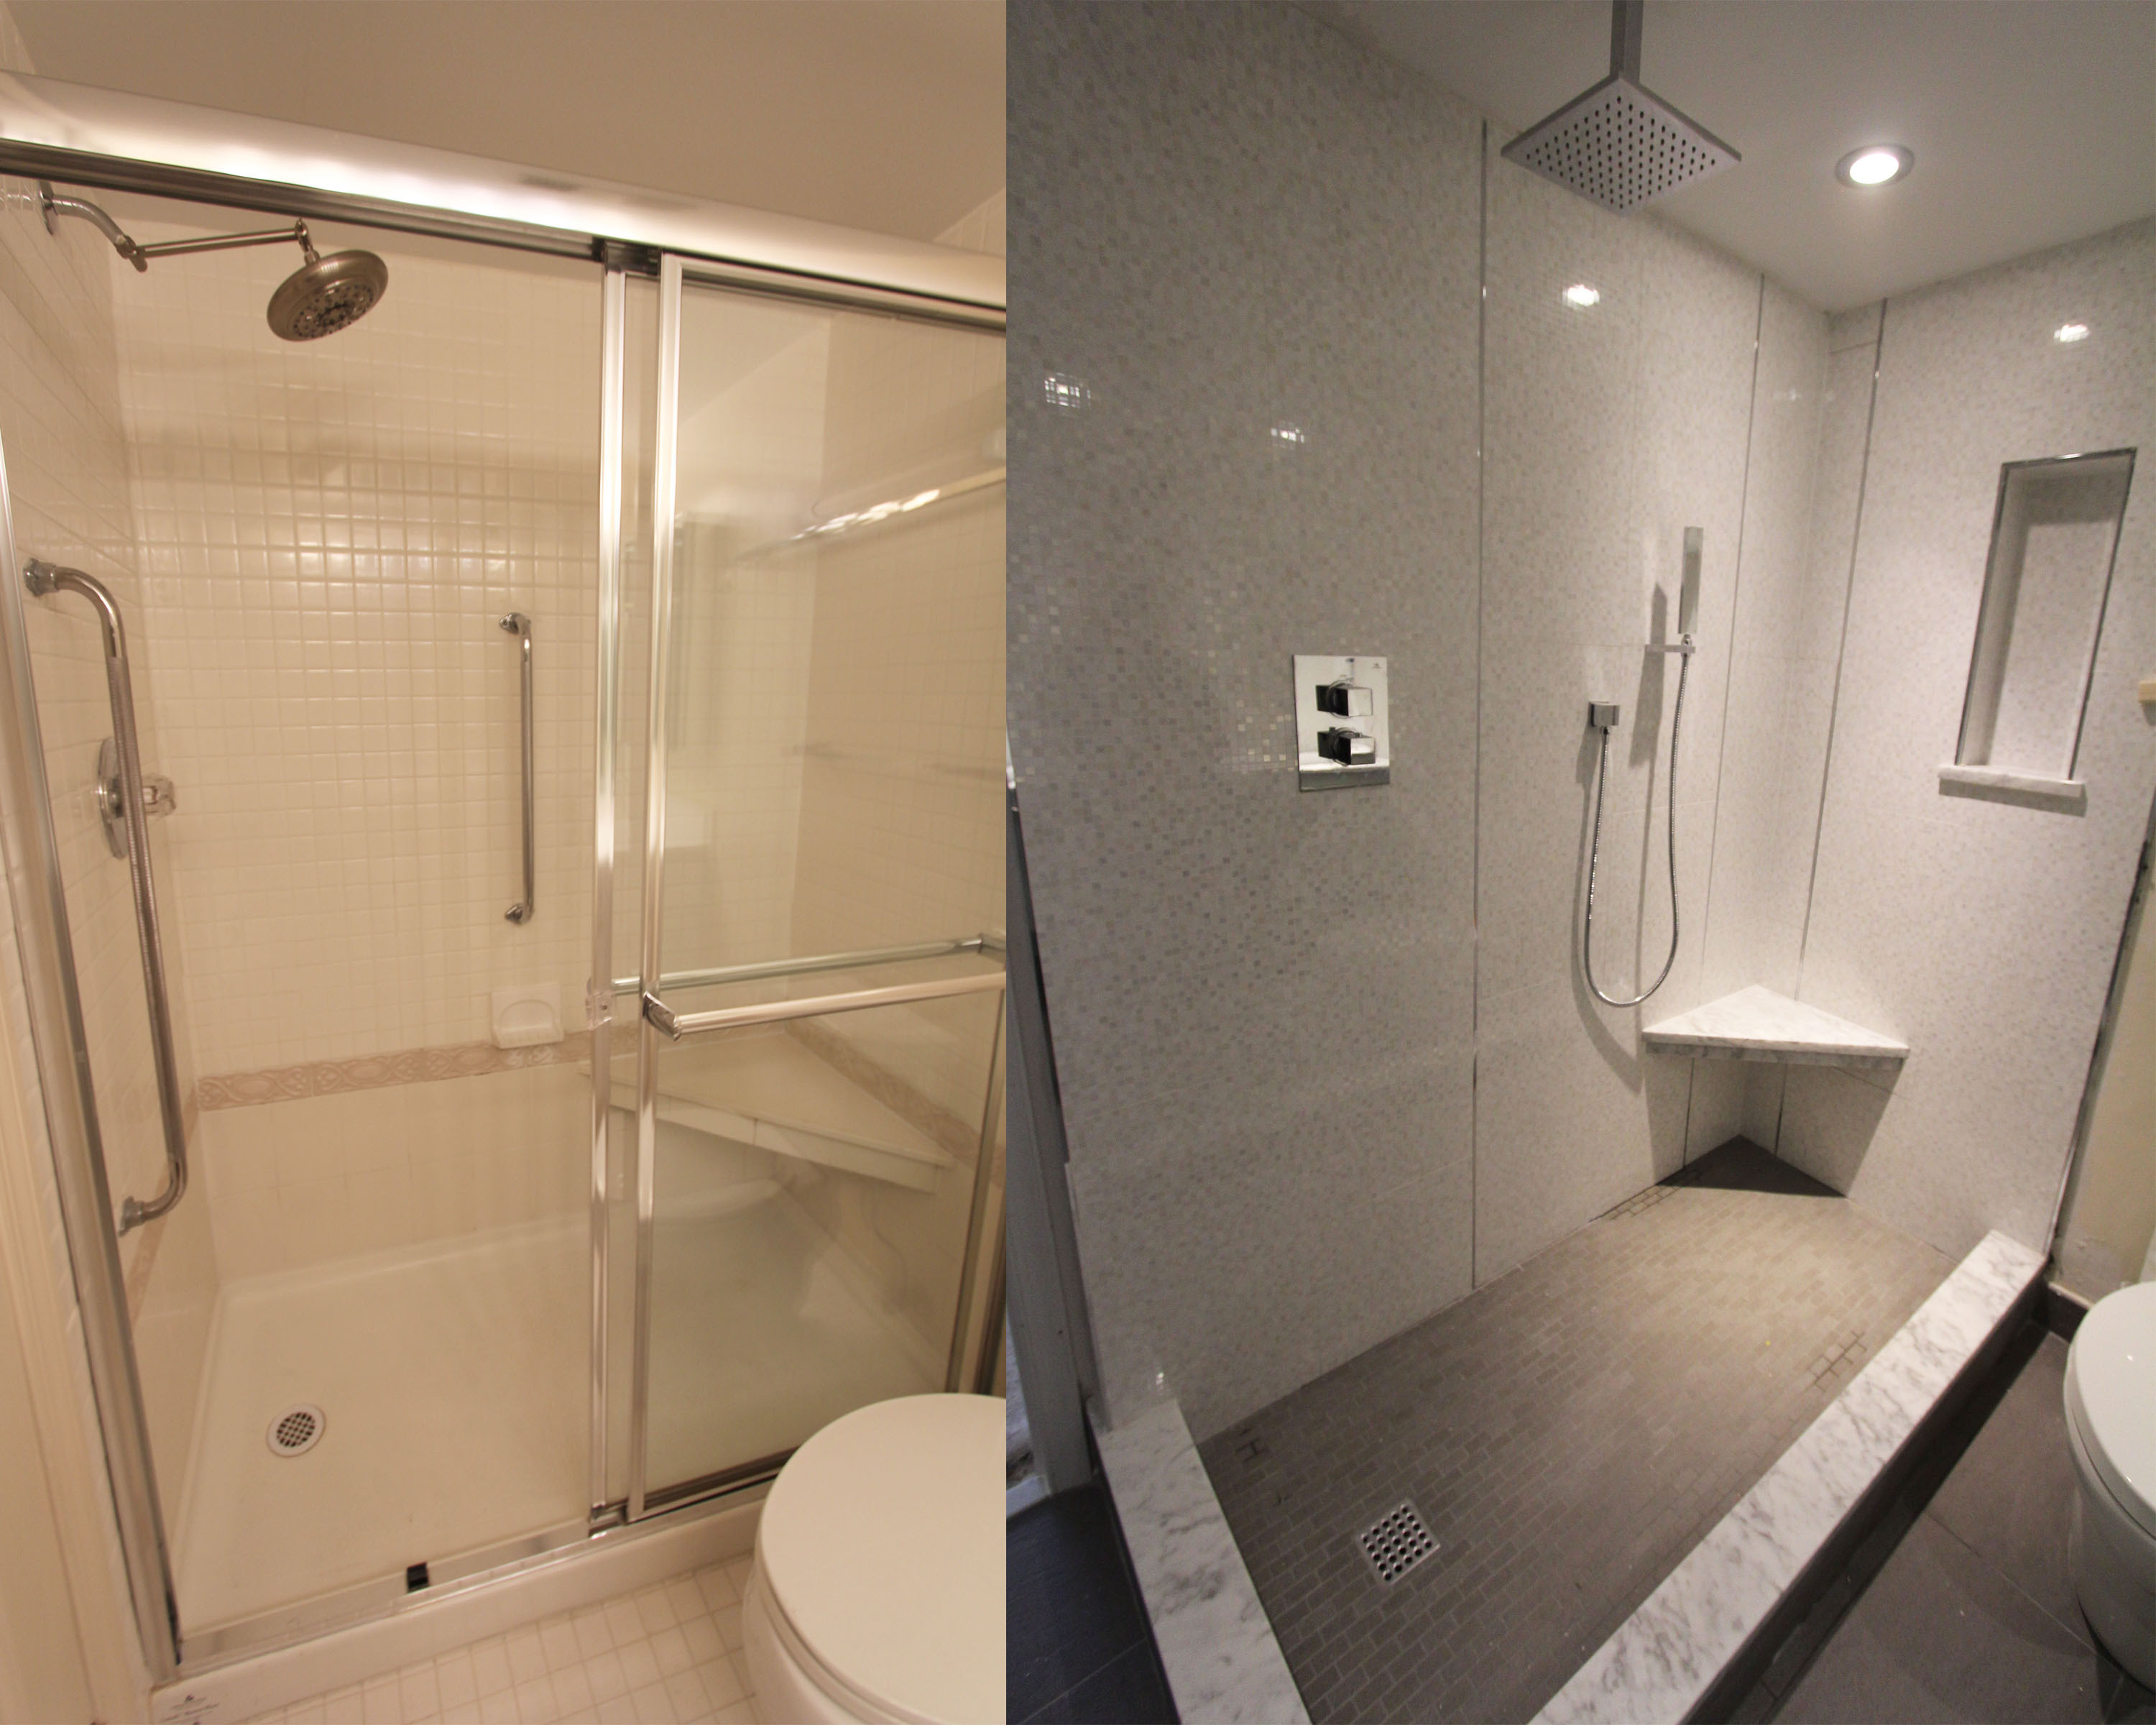 Best ideas about Cost To Remodel Bathroom . Save or Pin Cost Bathroom Remodel Look For Your Abilities Now.